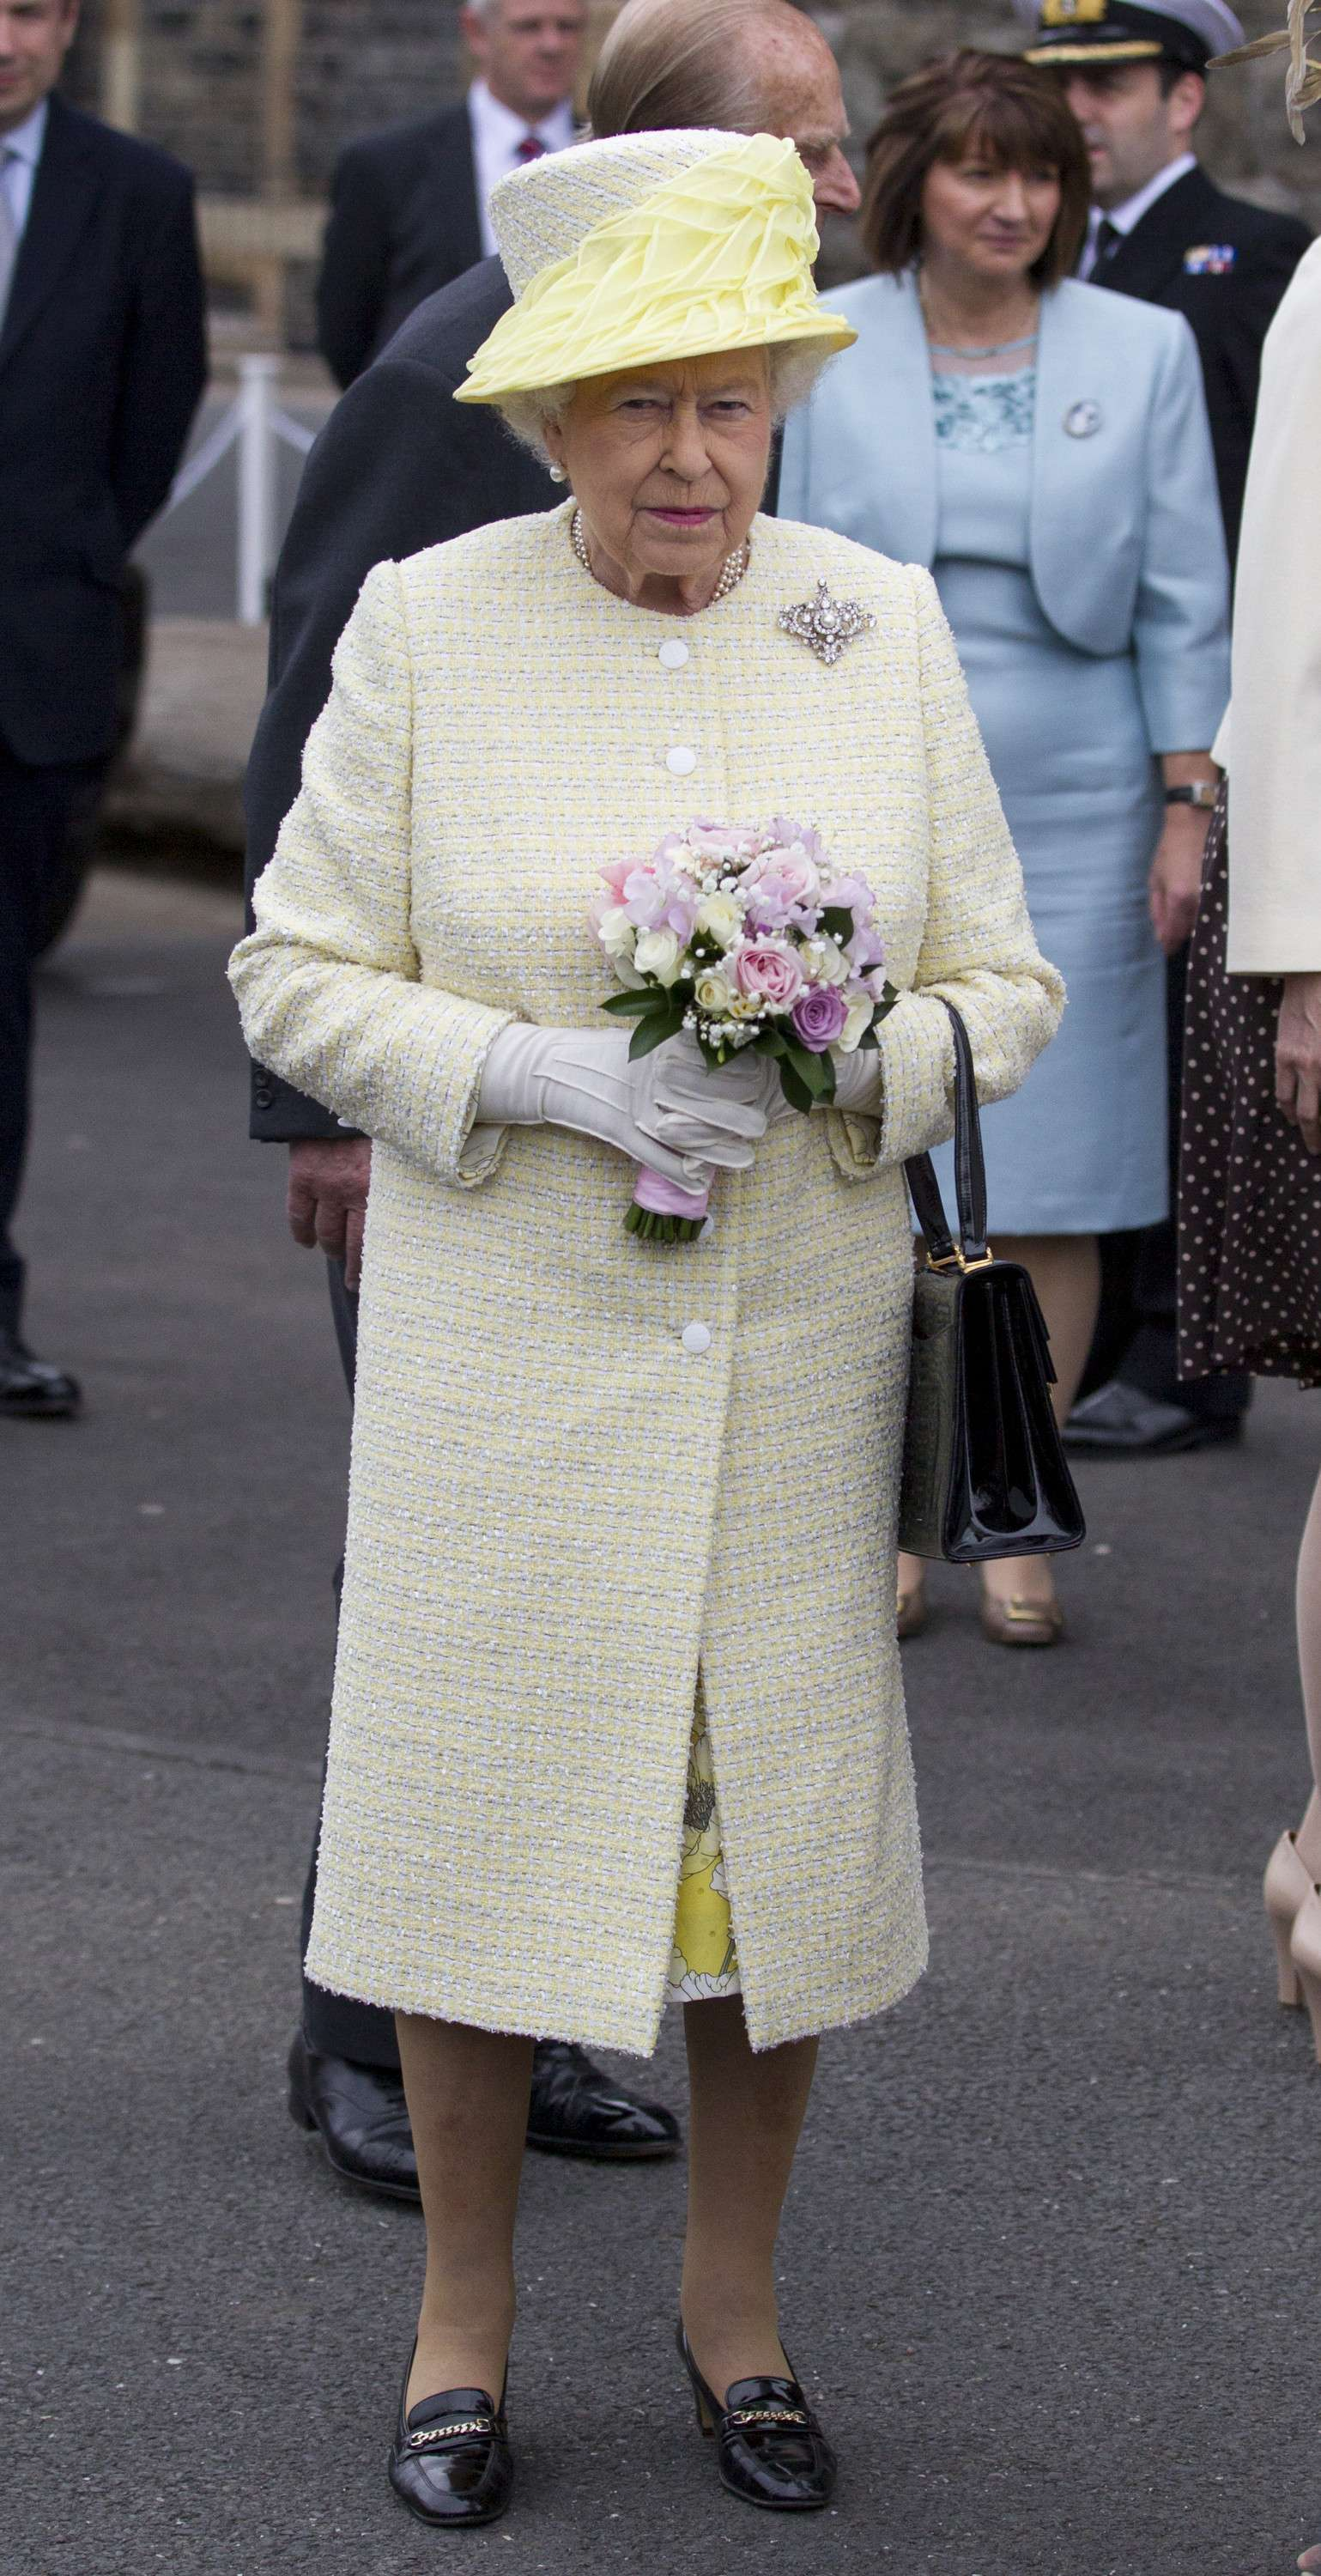 Reina Isabel II. Foto: Getty Images.